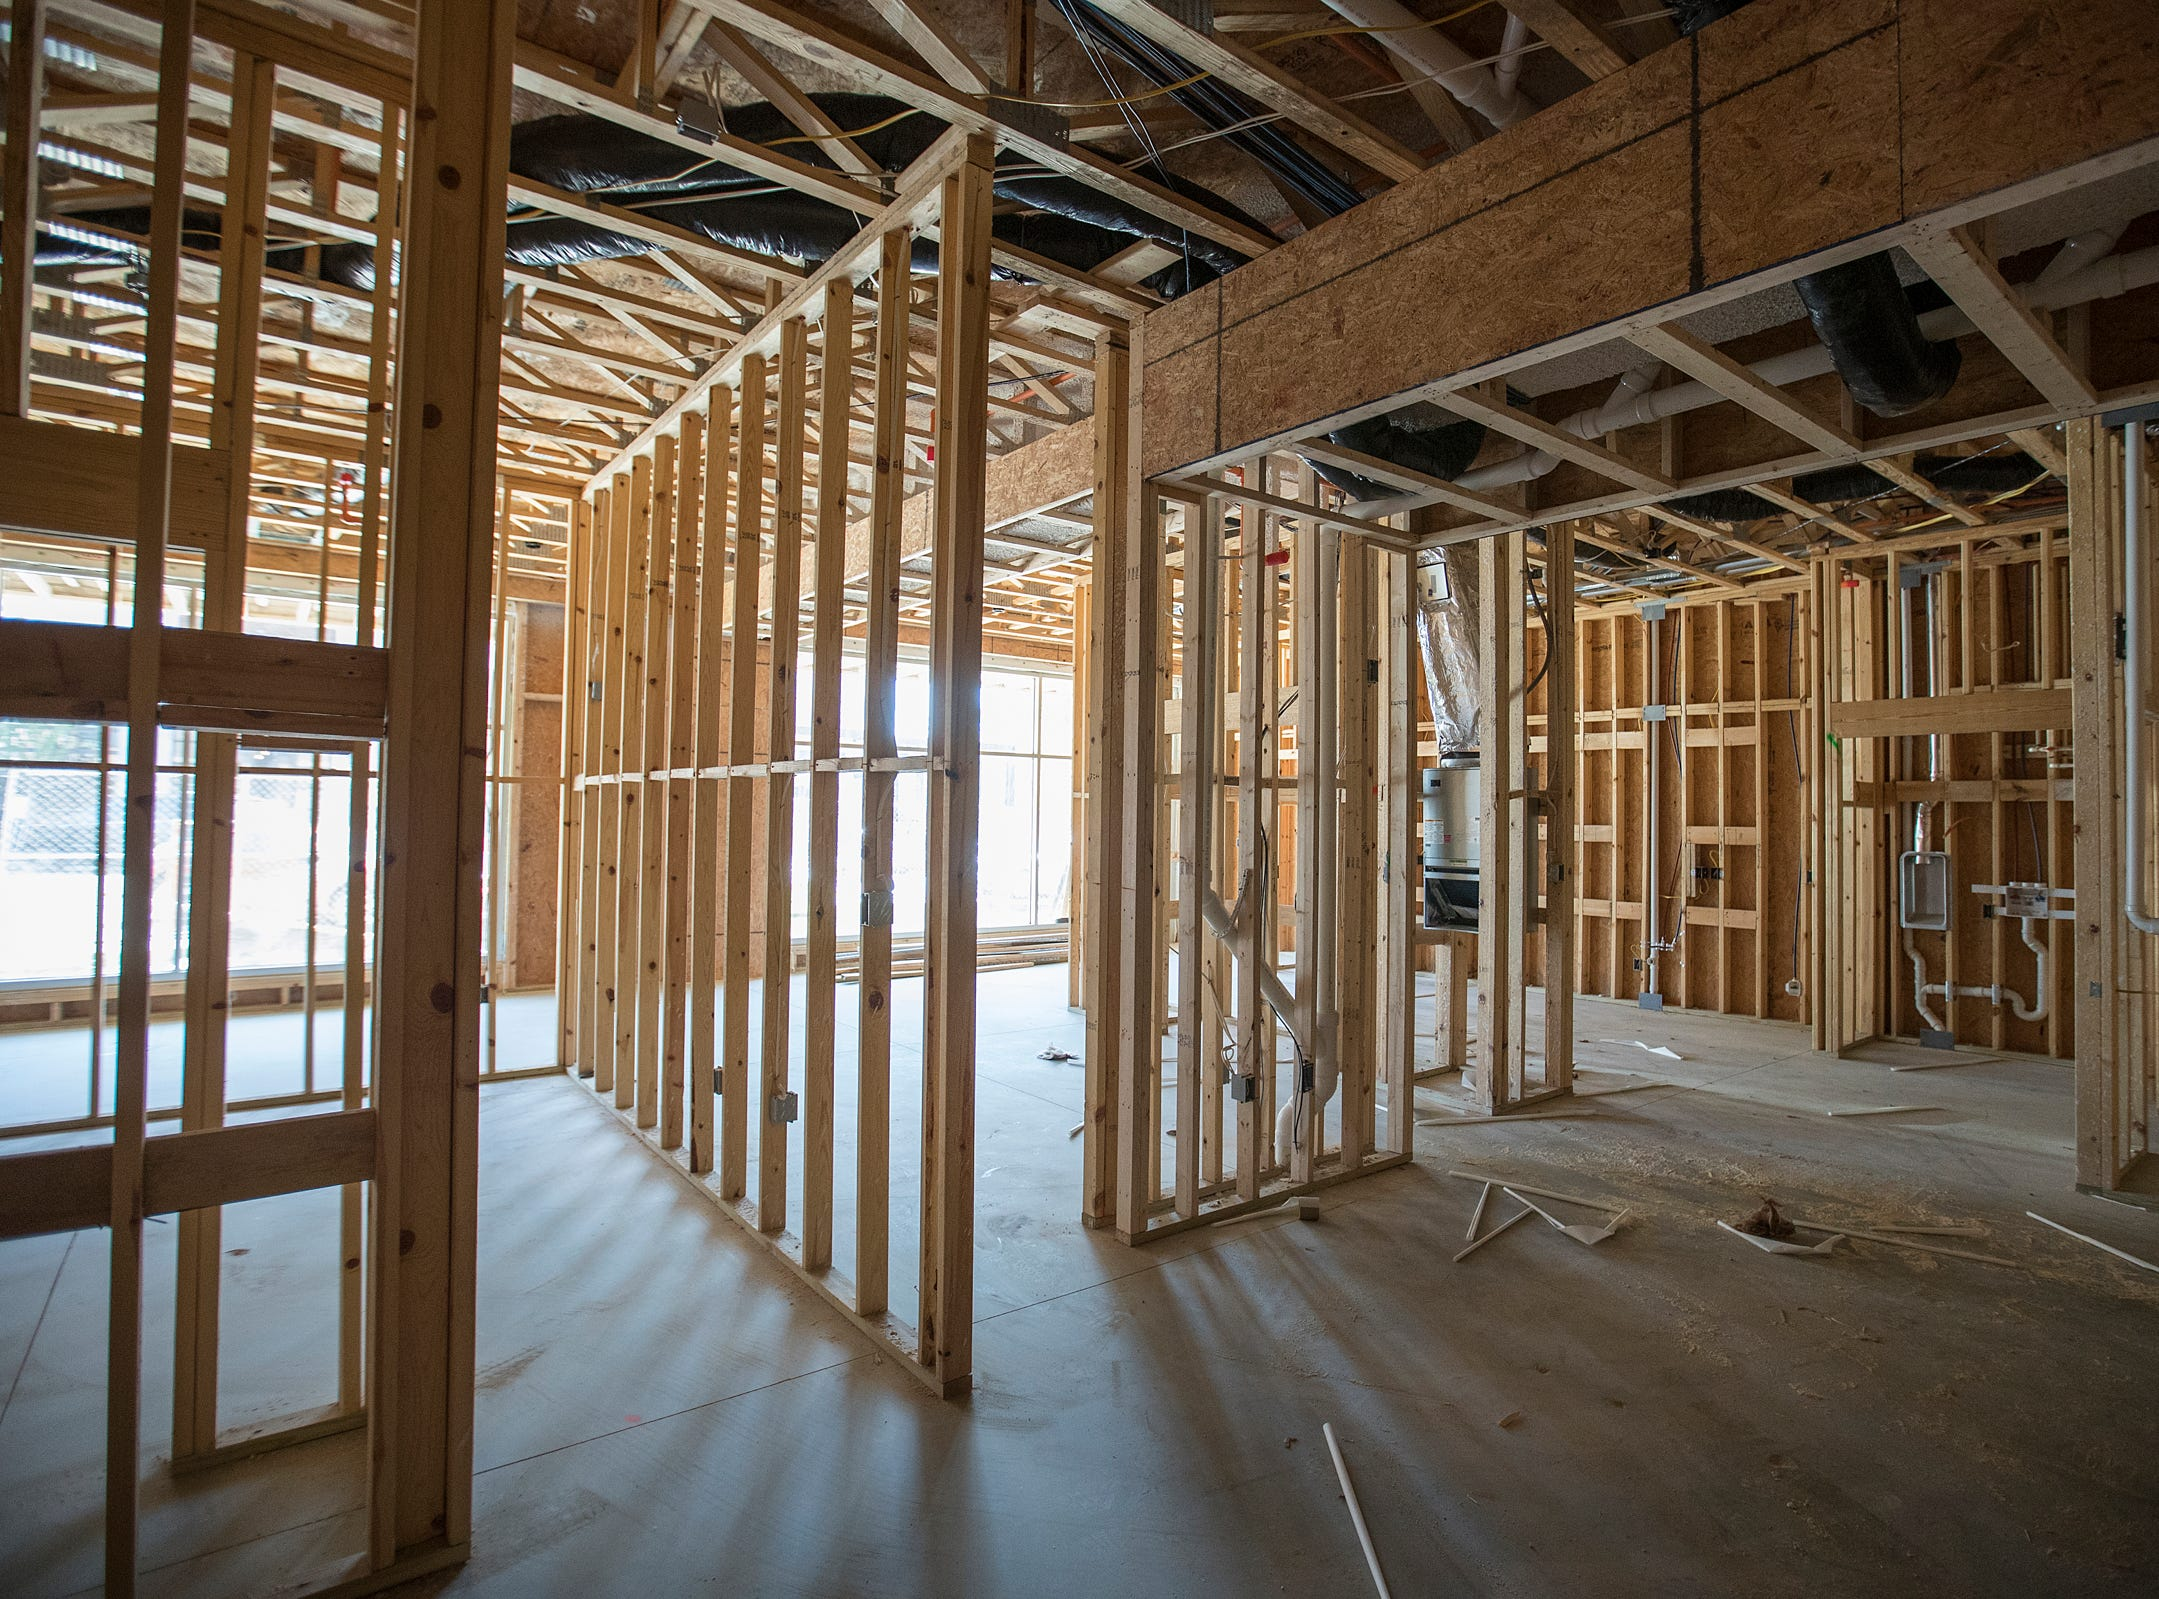 The residential portion of one of 11 live/work spaces at Spark Apartments in Fishers, Ind., on Friday, Sept. 14, 2018. Each live/work unit combines a studio apartment and storefront retail or commercial space. The complex also offers 200 one-, two- and three-bedroom apartments.